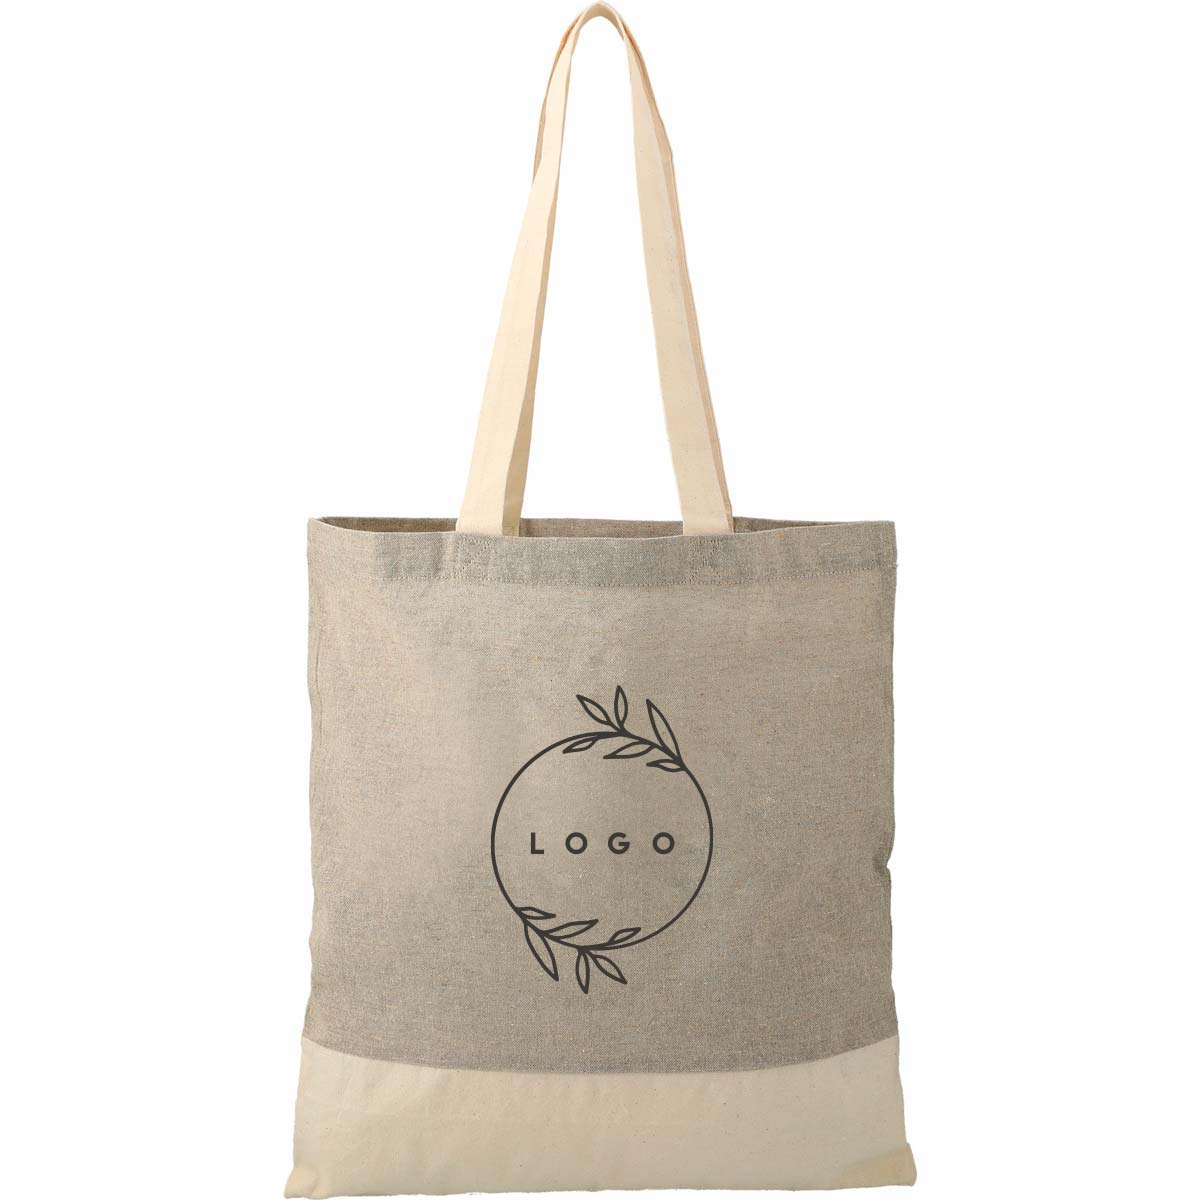 287841 two tone recycled cotton tote one color one location imprint